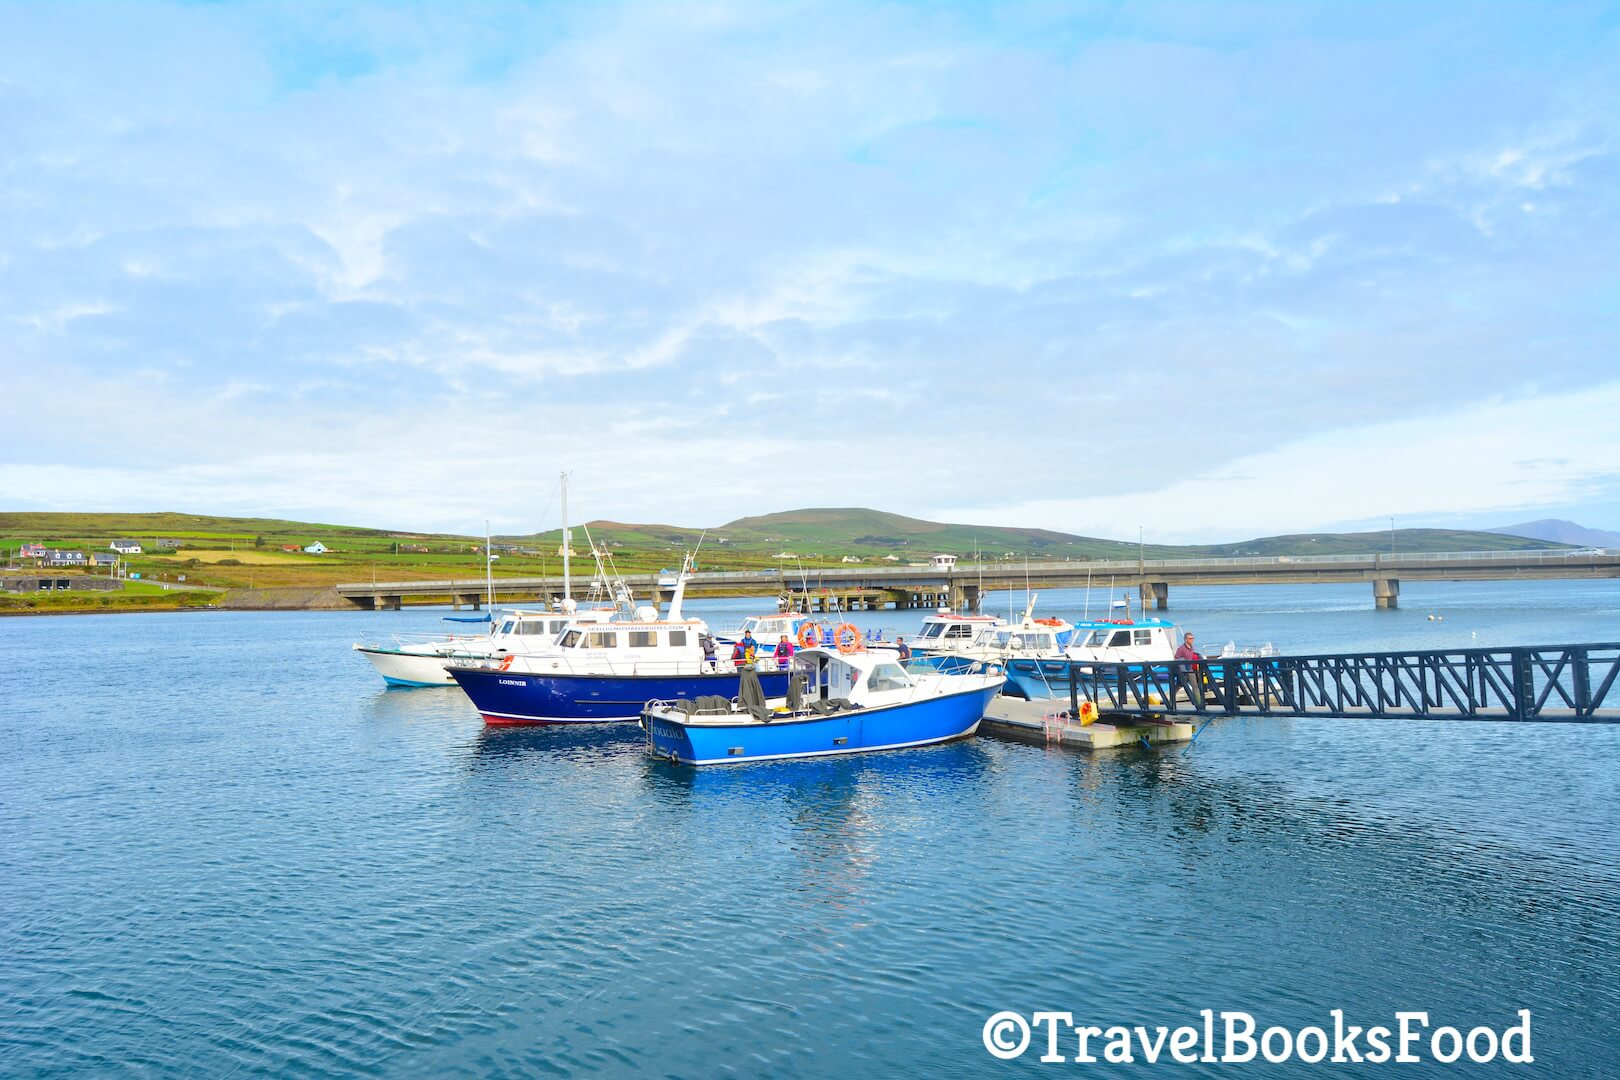 A photo of Portmagee Harbour with crystal clear blue water and few boats with a bridge and some mountains in the distance